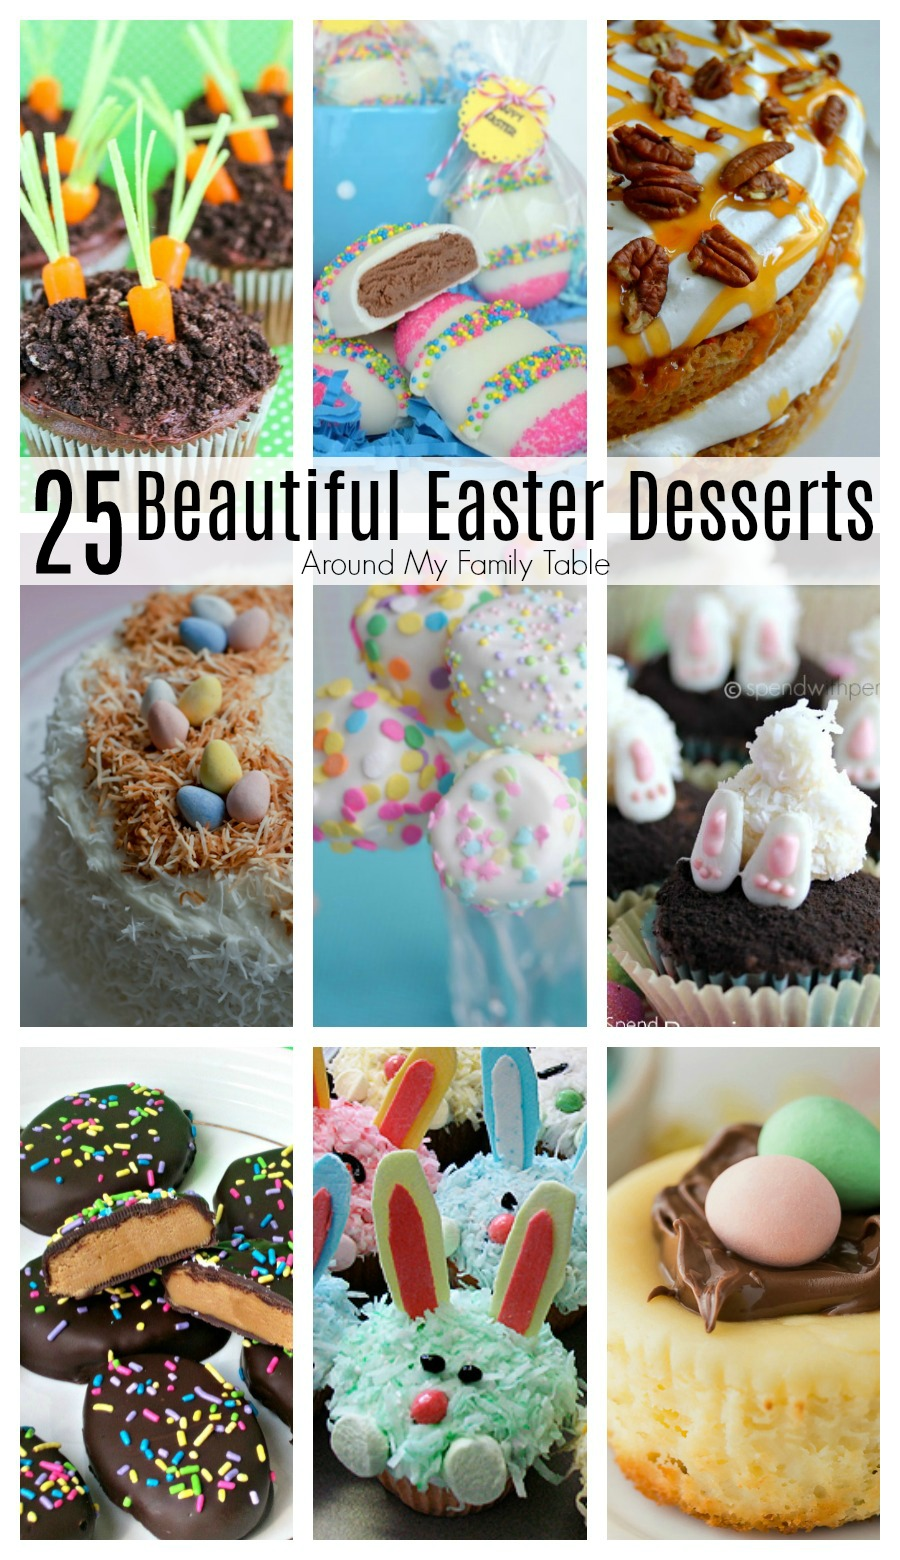 These 25 Easter Desserts are sure to inspire you to make something delicious for your family. They are the most beautiful Easter dessert recipes that you will find!